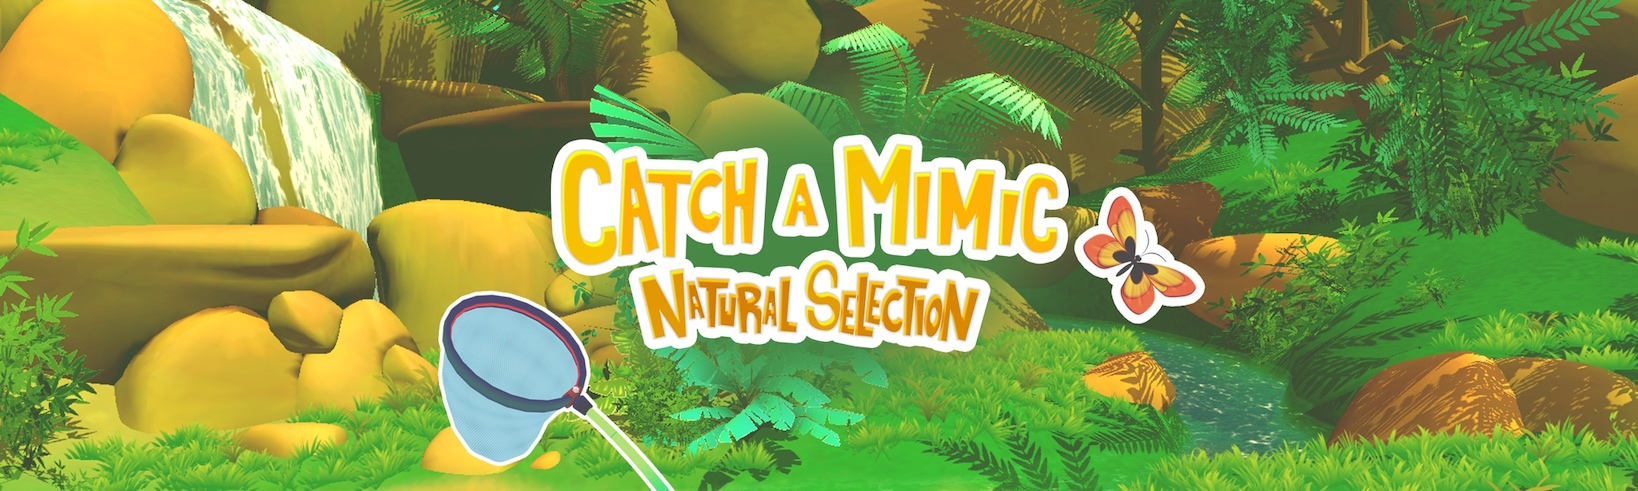 Natural Selection - Catch A Mimic